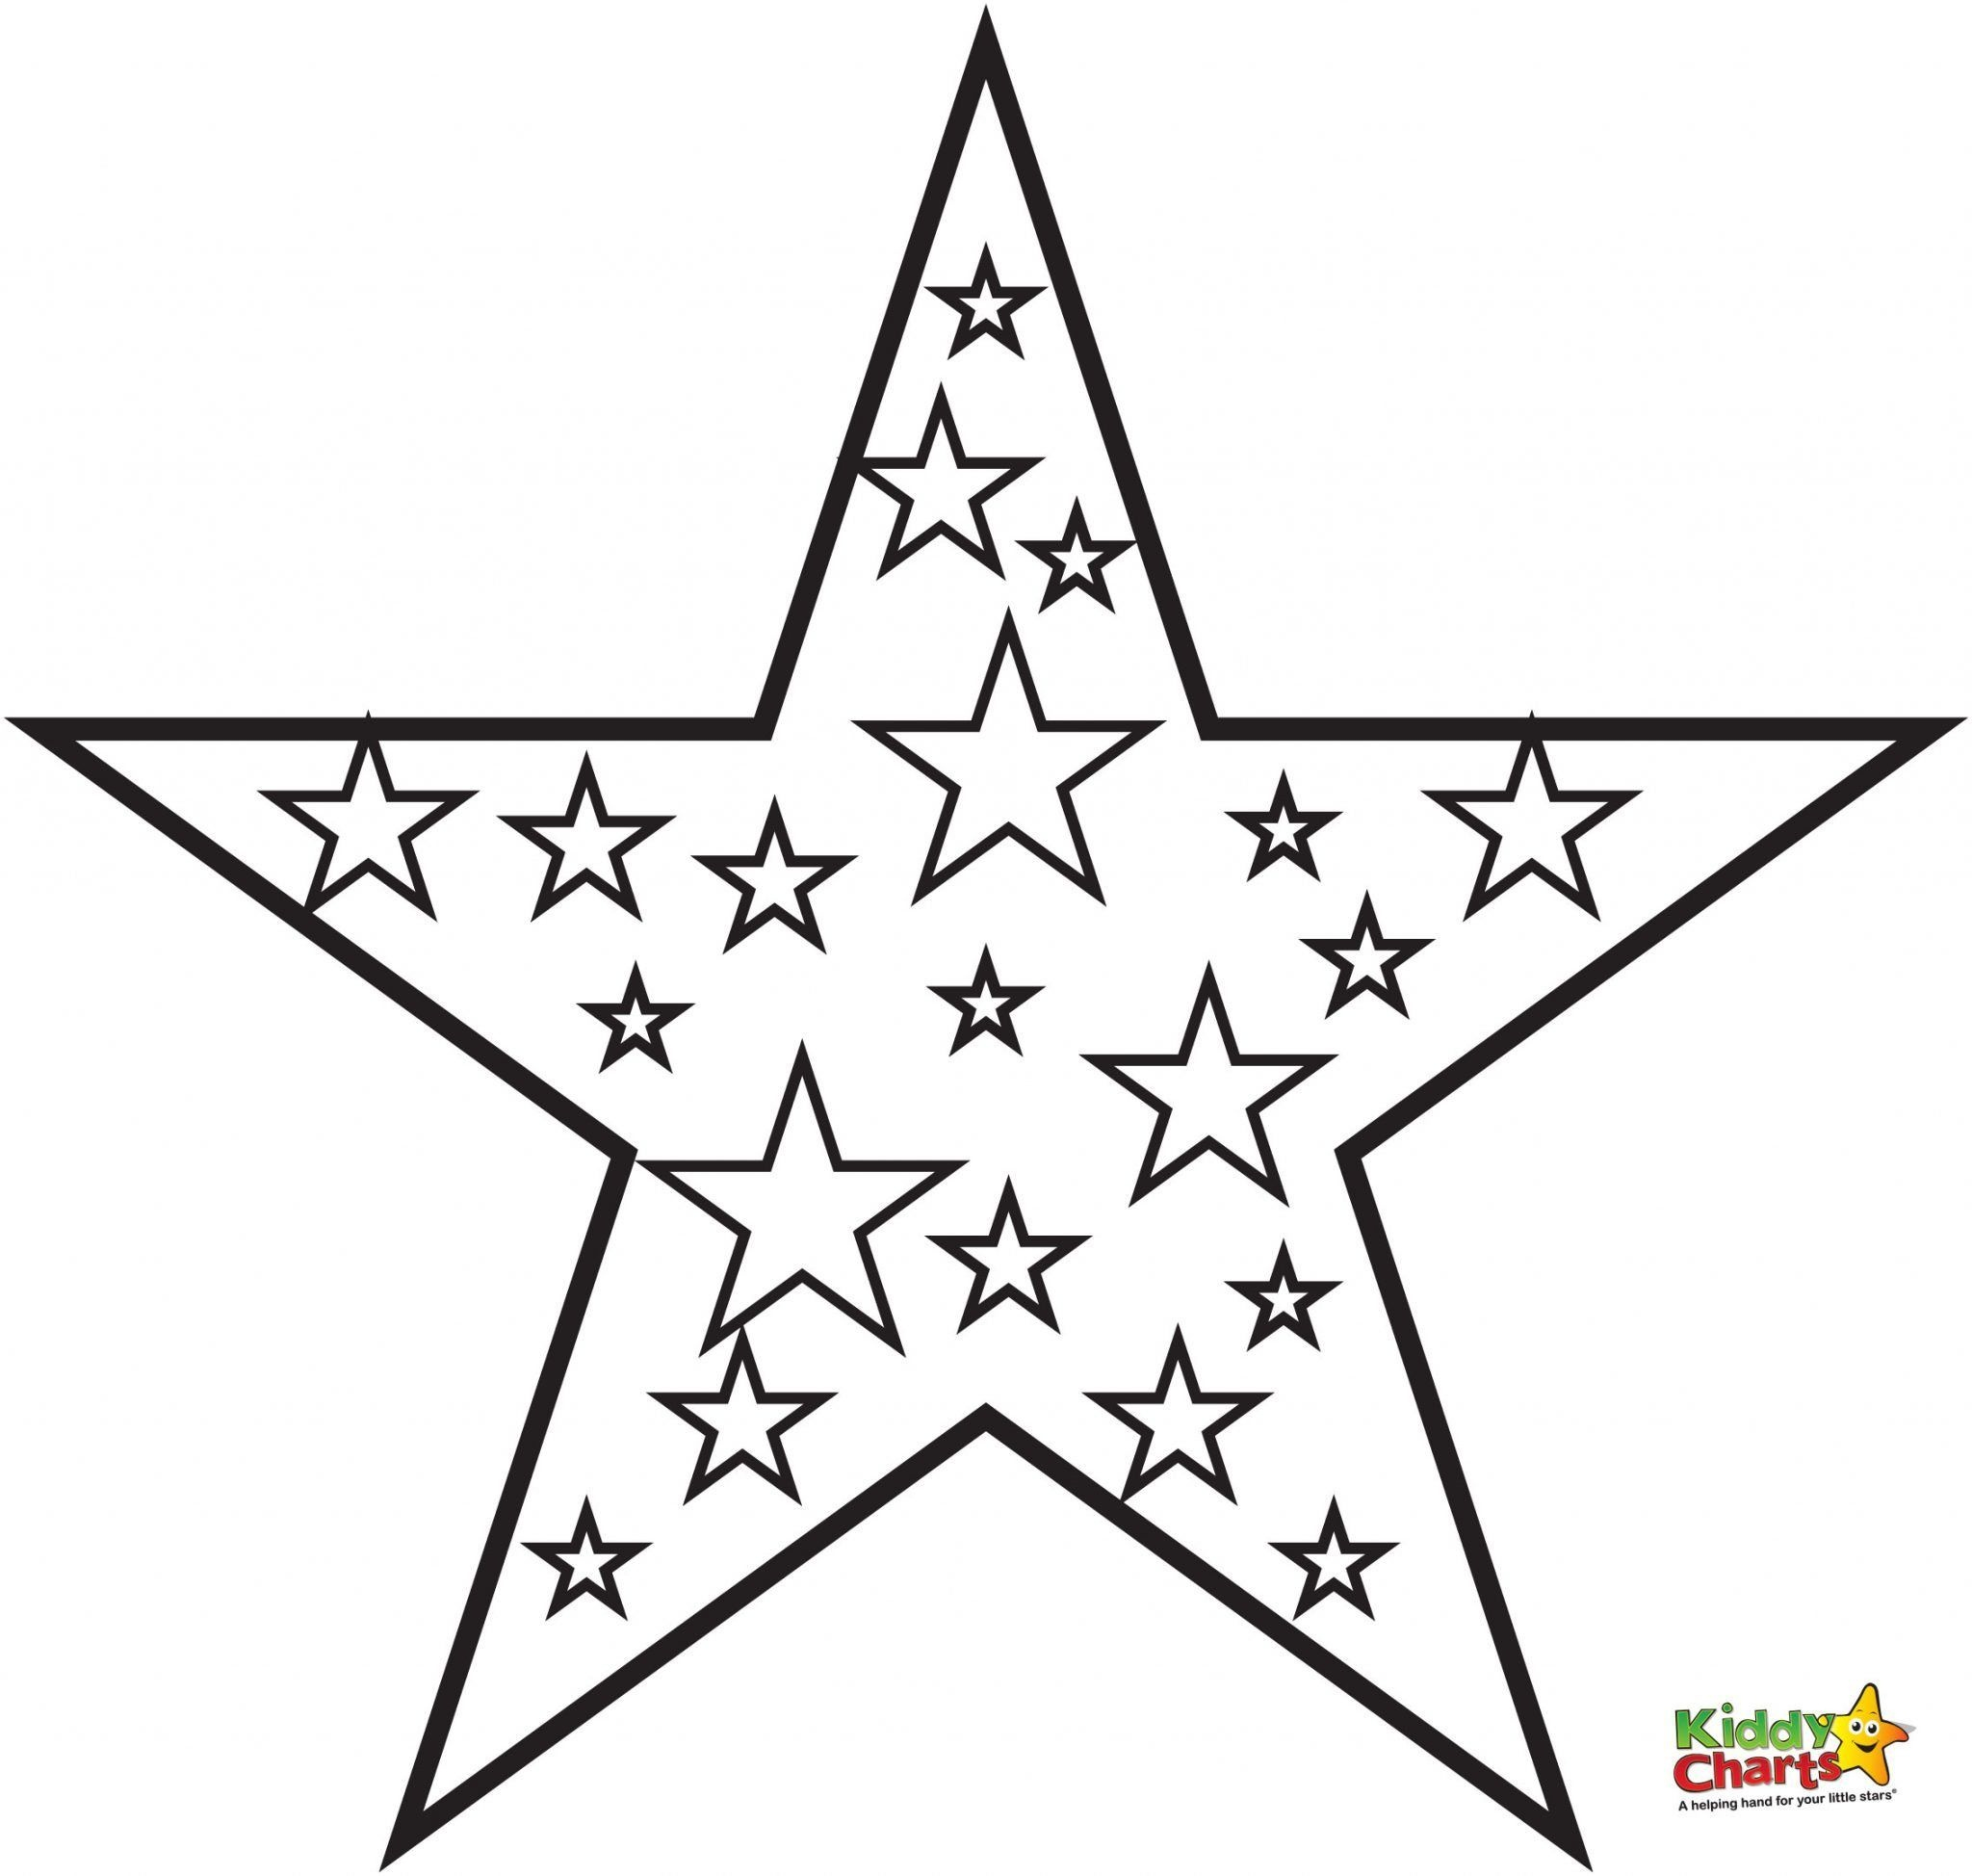 Star Coloring Pages | Froth | Star Coloring Pages, Coloring Pages - Free Printable Christmas Star Coloring Pages